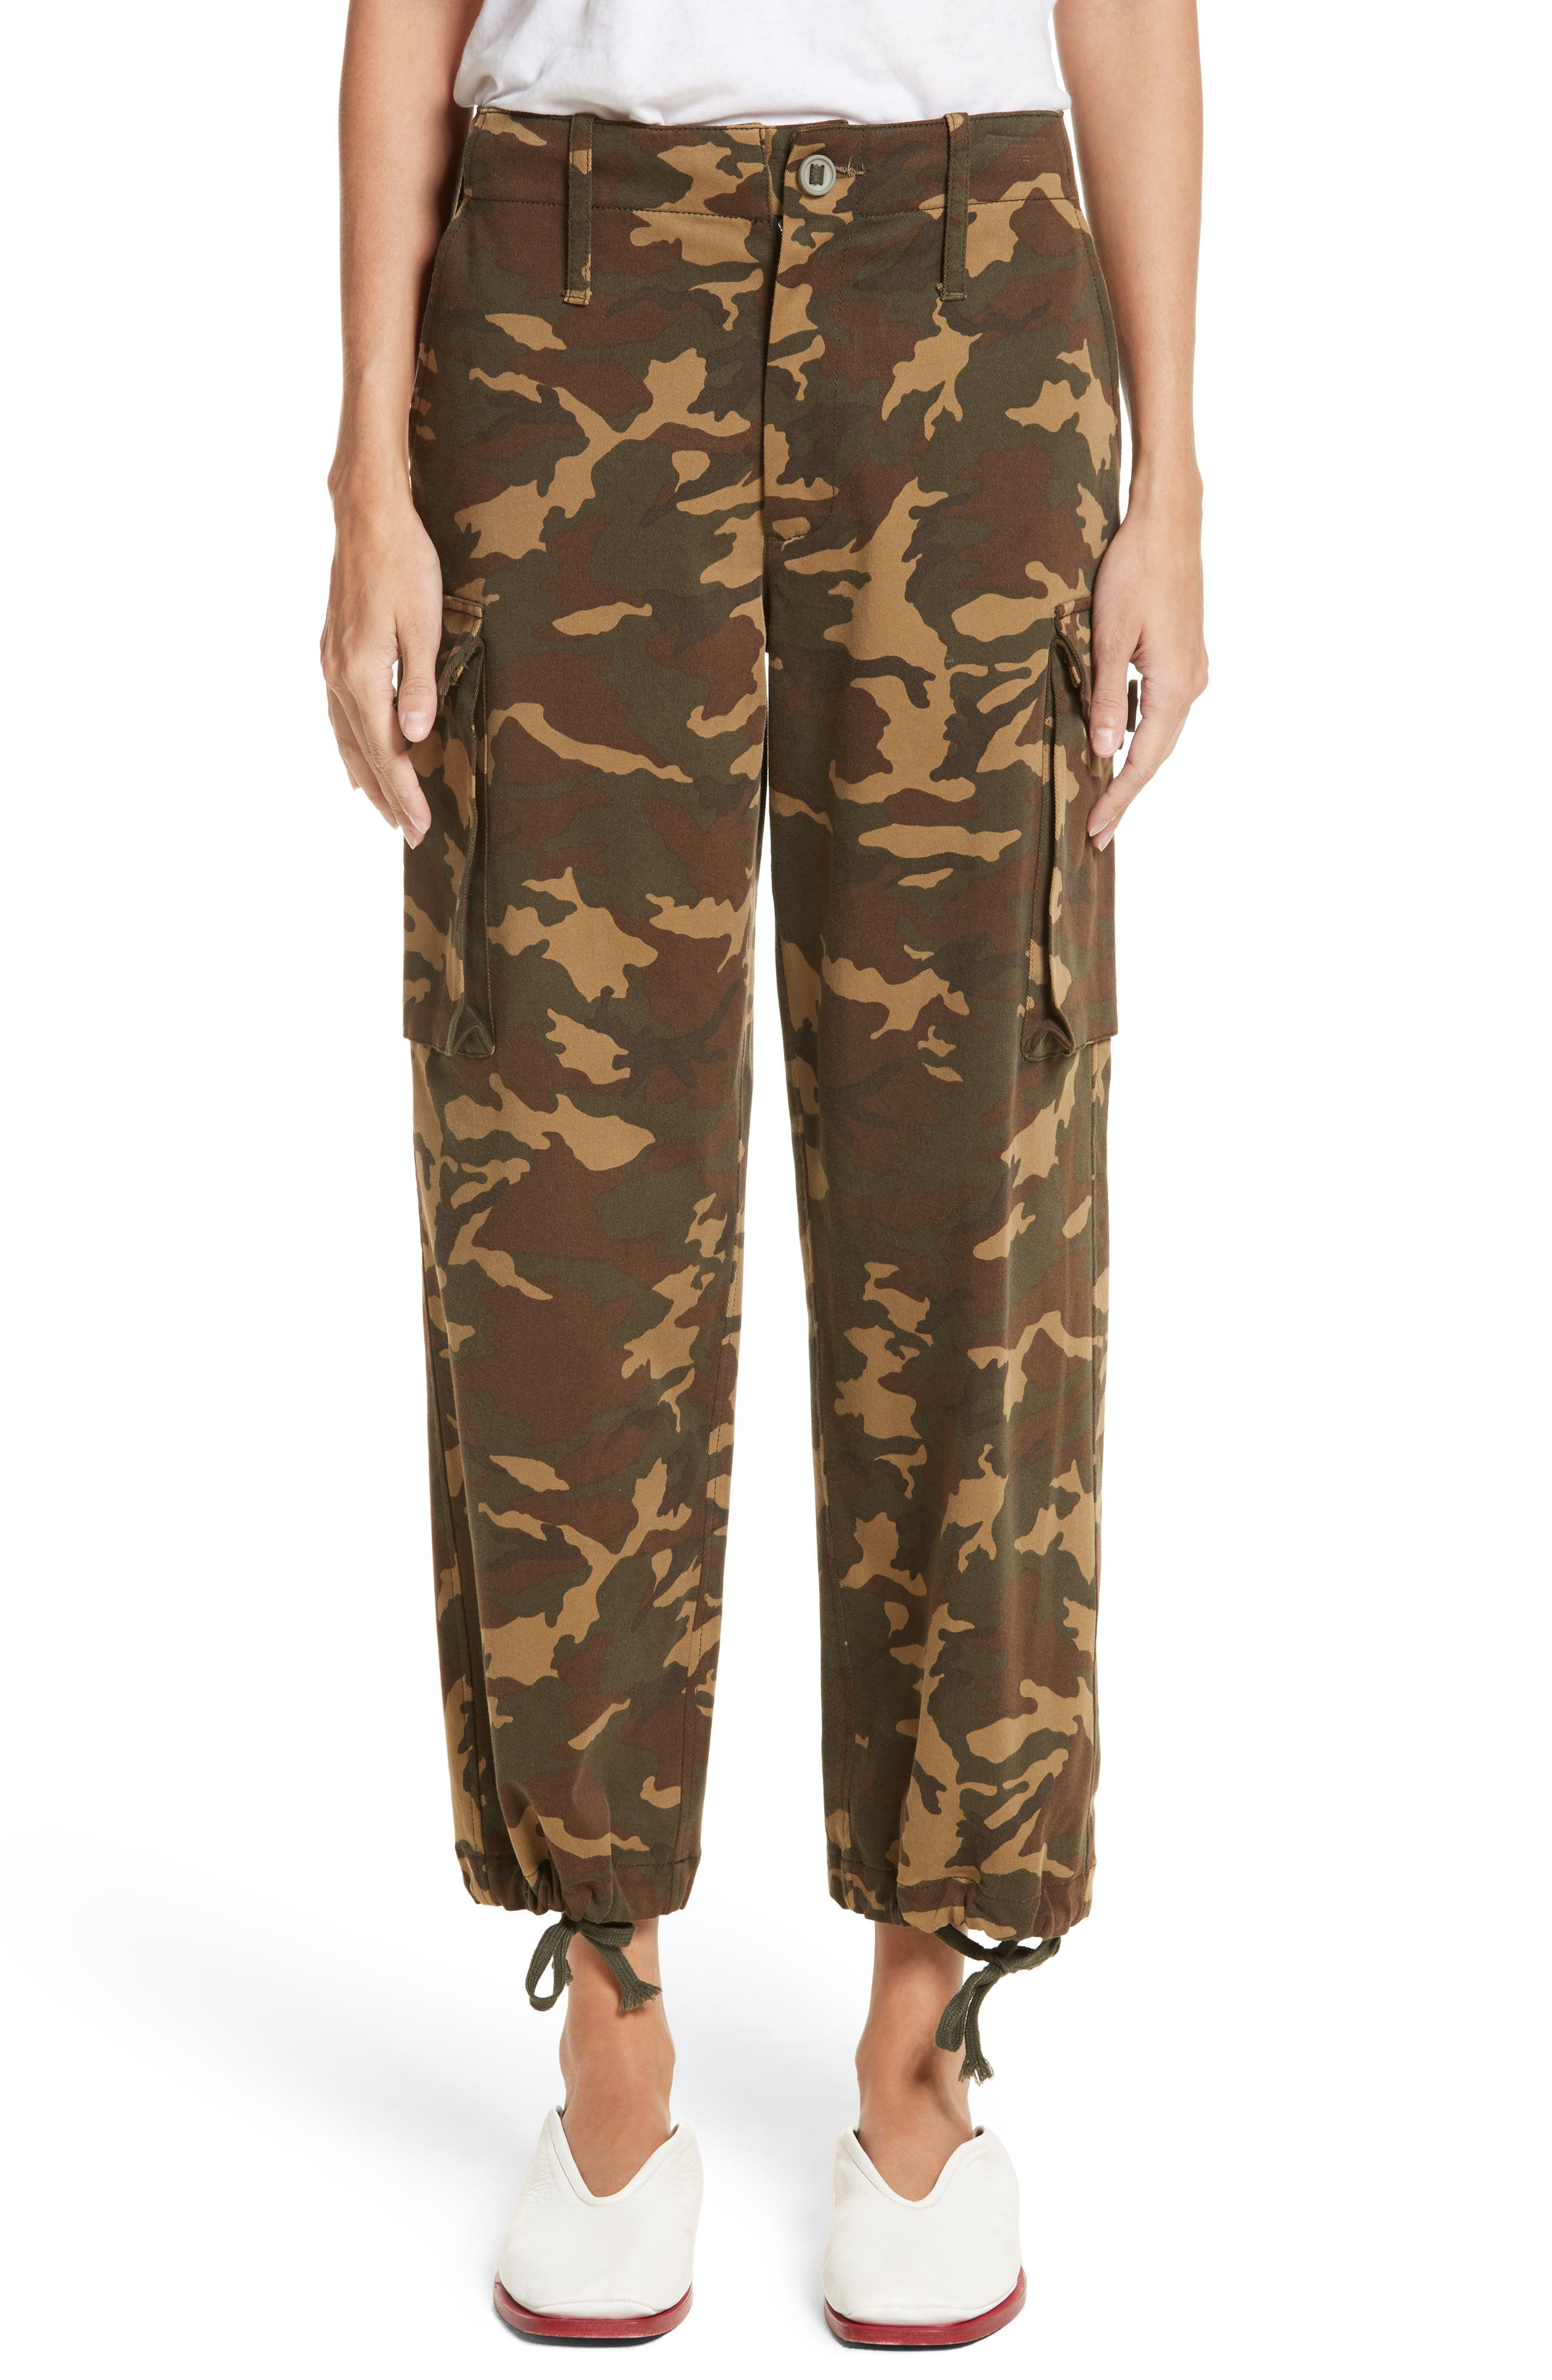 Alternate Image 1 Selected - Proenza Schouler PSWL Camouflage Stretch Cotton Pants